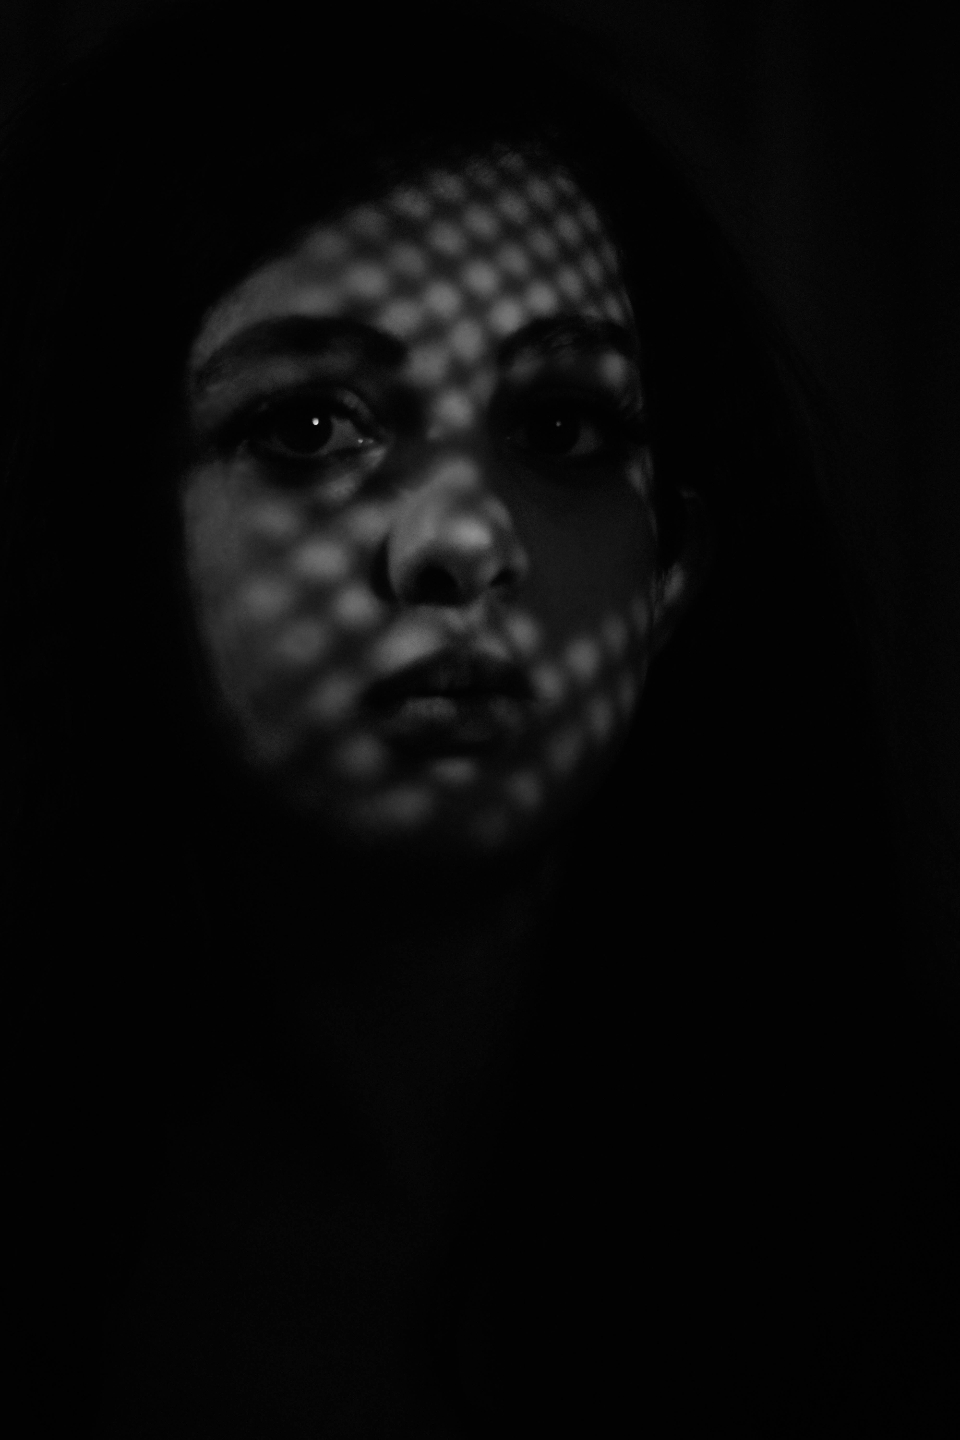 woman face shadow dark gloomy spooky scary portrait moody bw black and white contrast monochrome person female alone